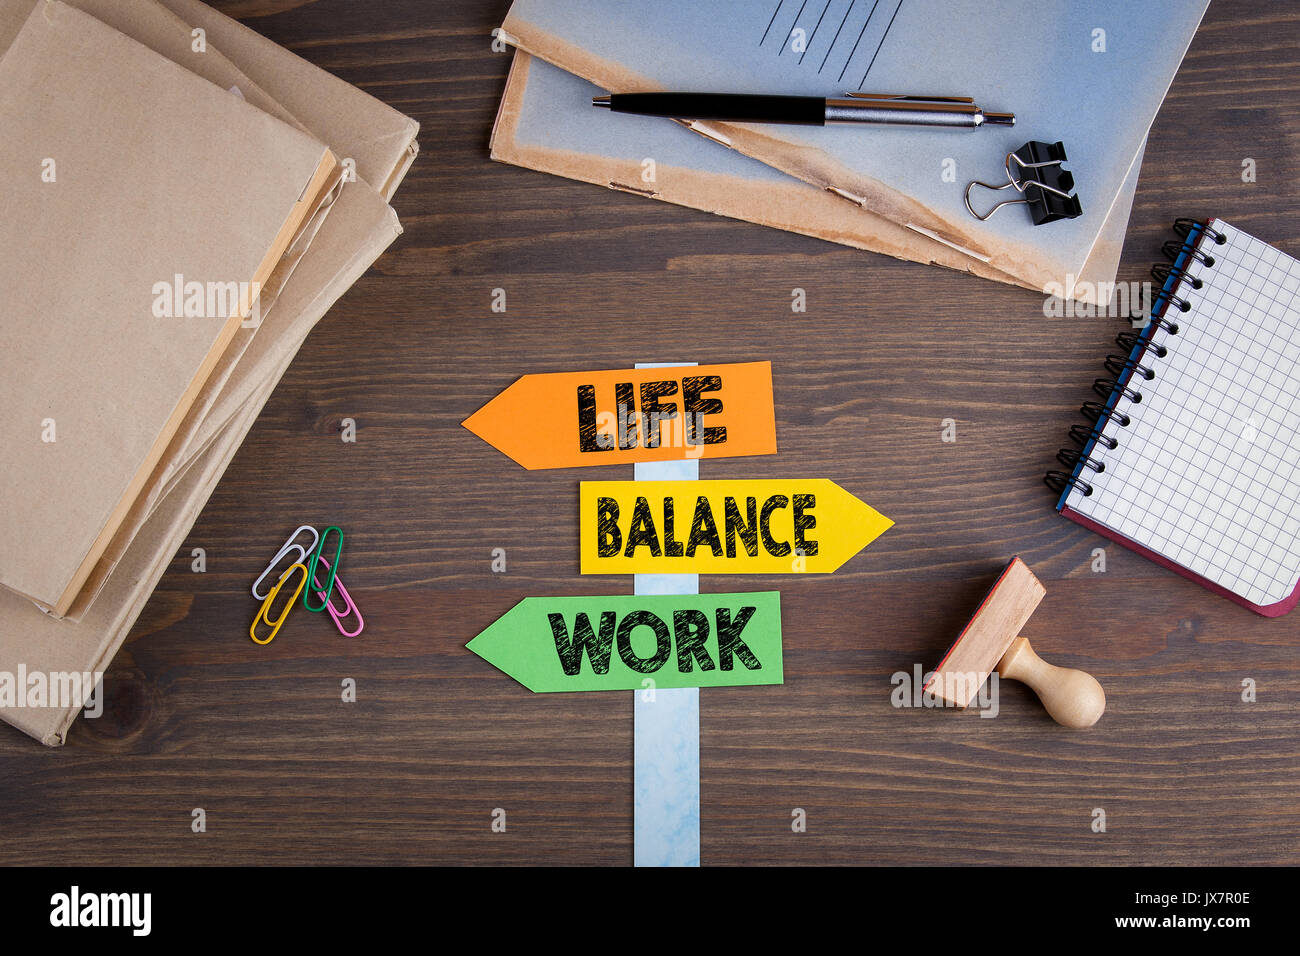 Work Life Balance concept. Paper signpost on a wooden desk. - Stock Image